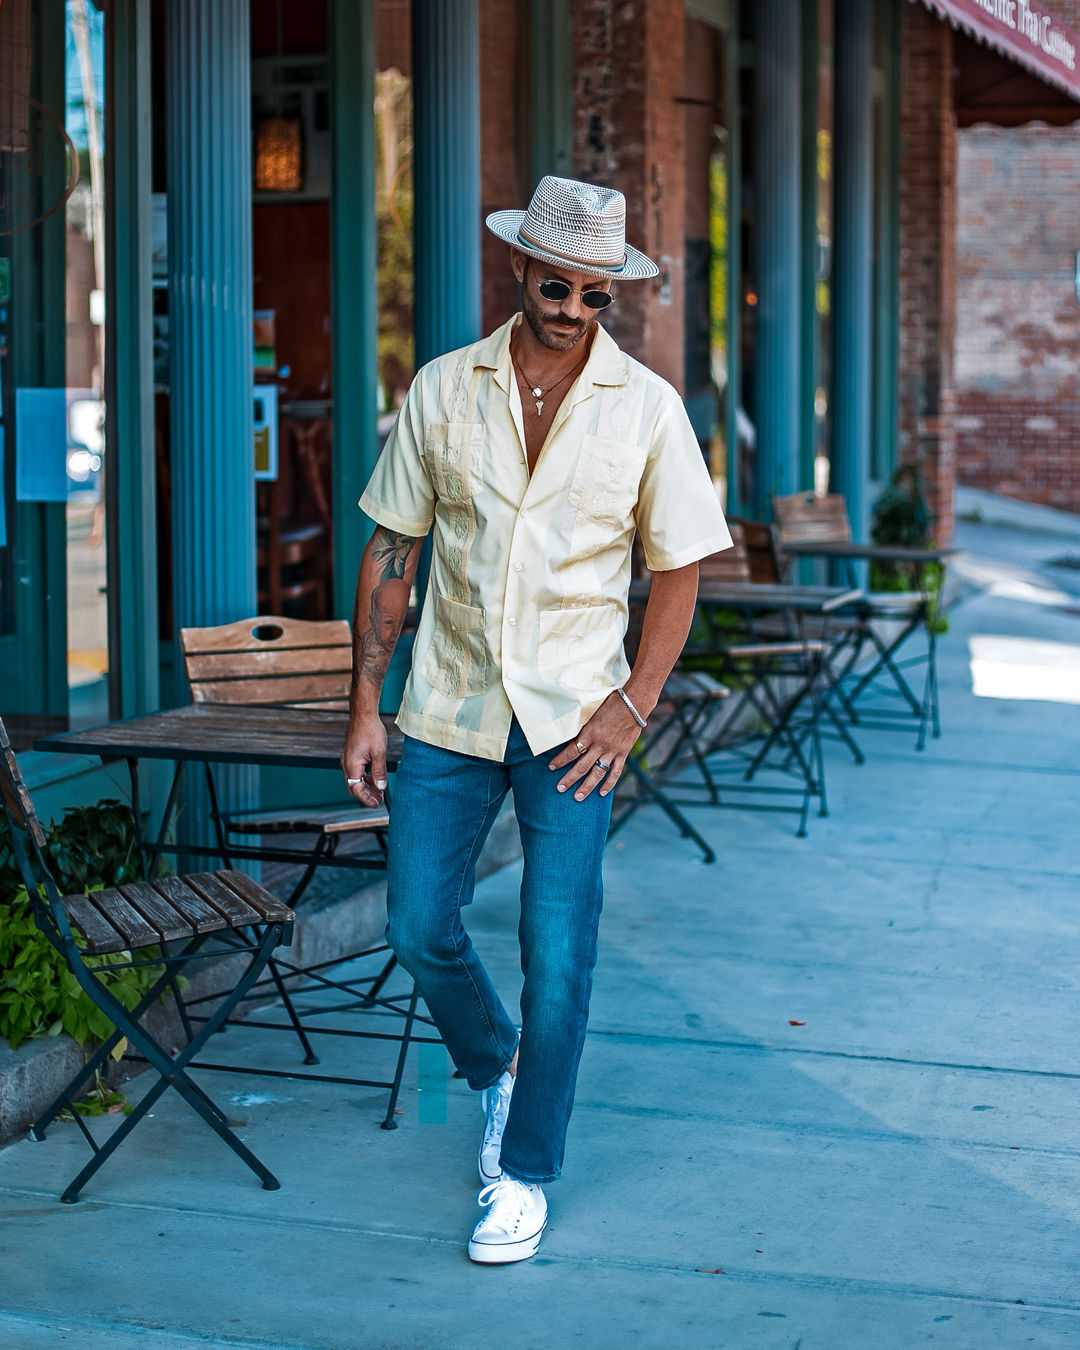 Lee Jeans Men's Outfit